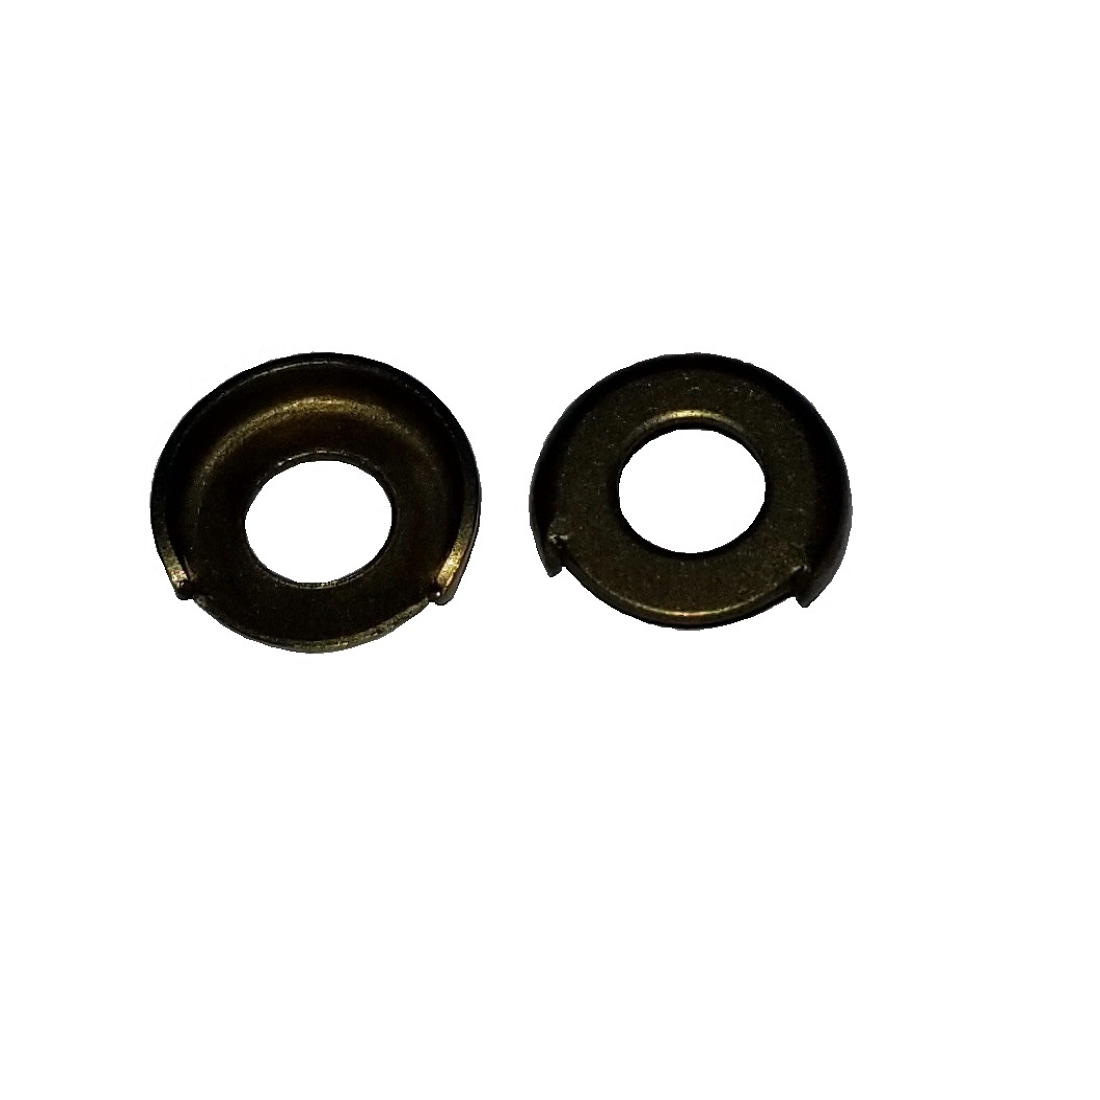 Terminal Cup Washer - 0.255 ID, 0.590 OD, 0.020 Thick, Copper